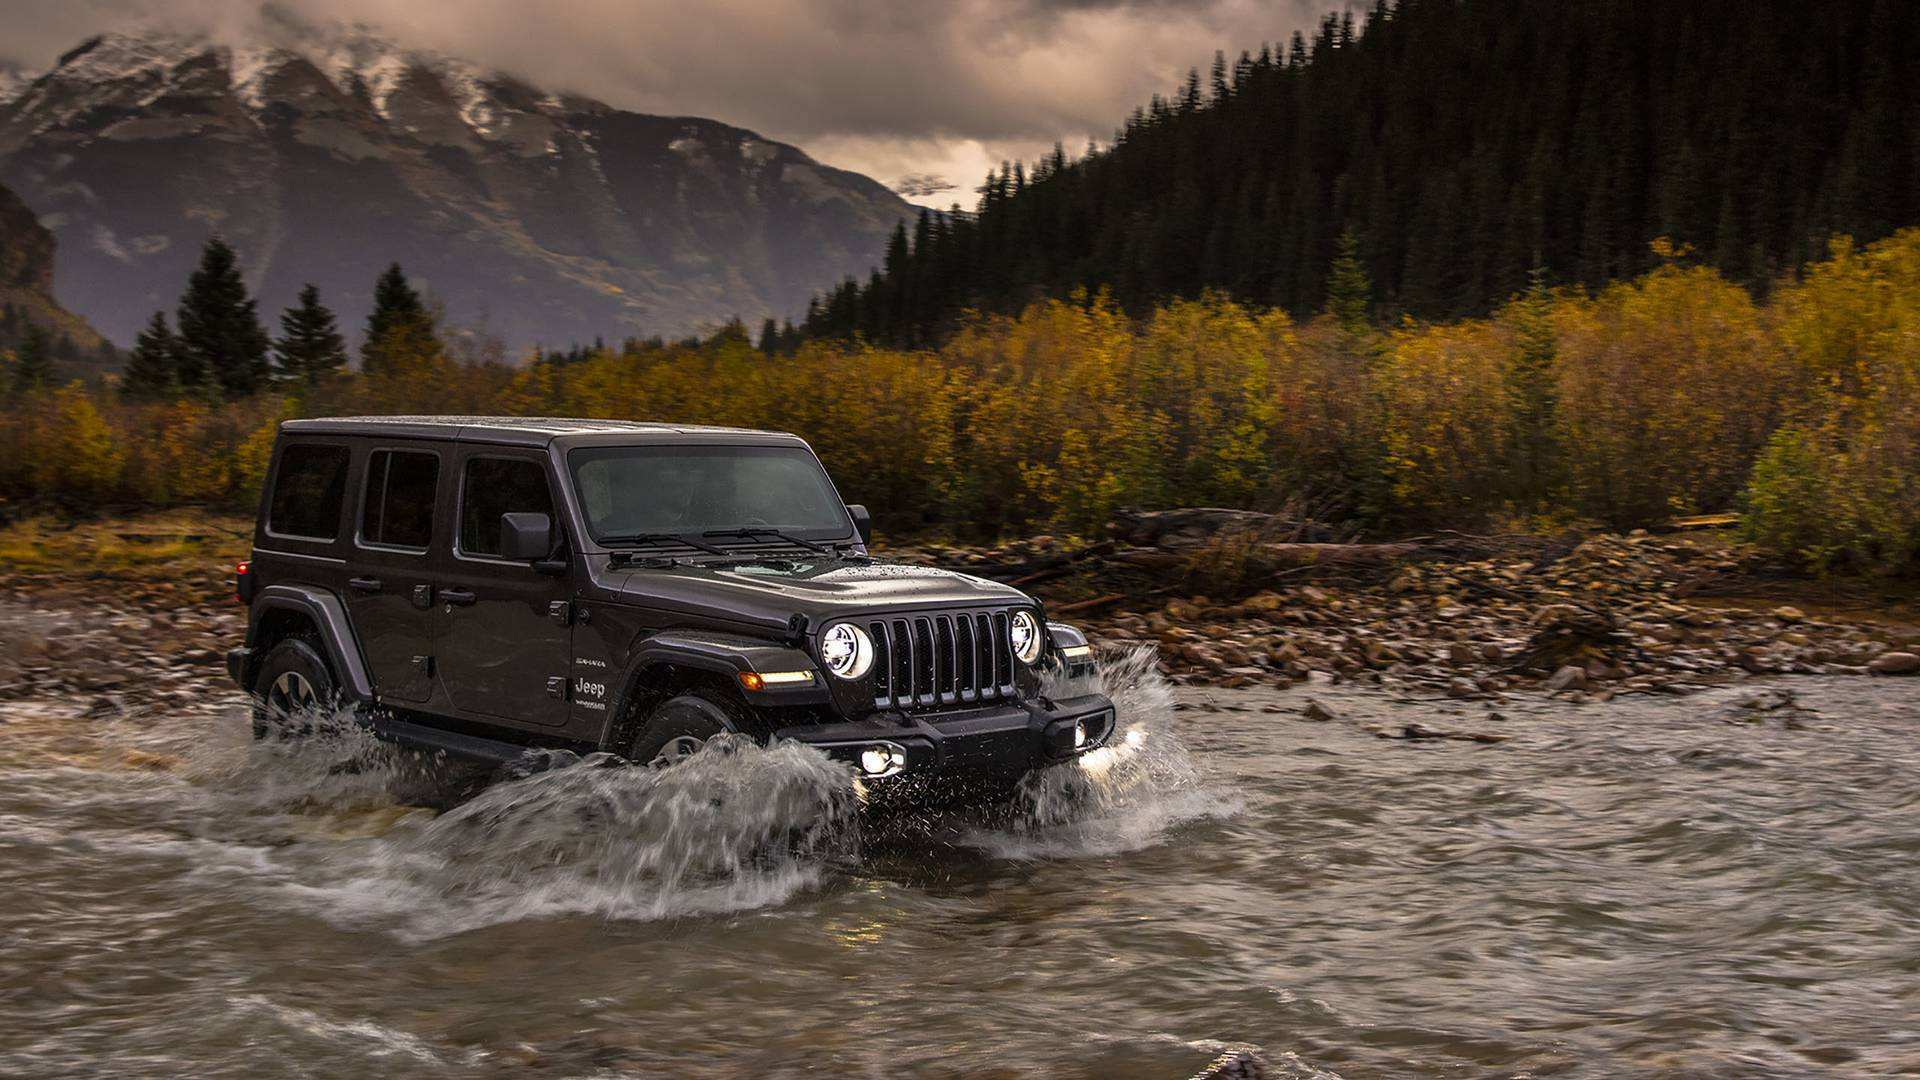 95 Gallery of 2019 Jeep 2 0 Turbo Mpg Release by 2019 Jeep 2 0 Turbo Mpg